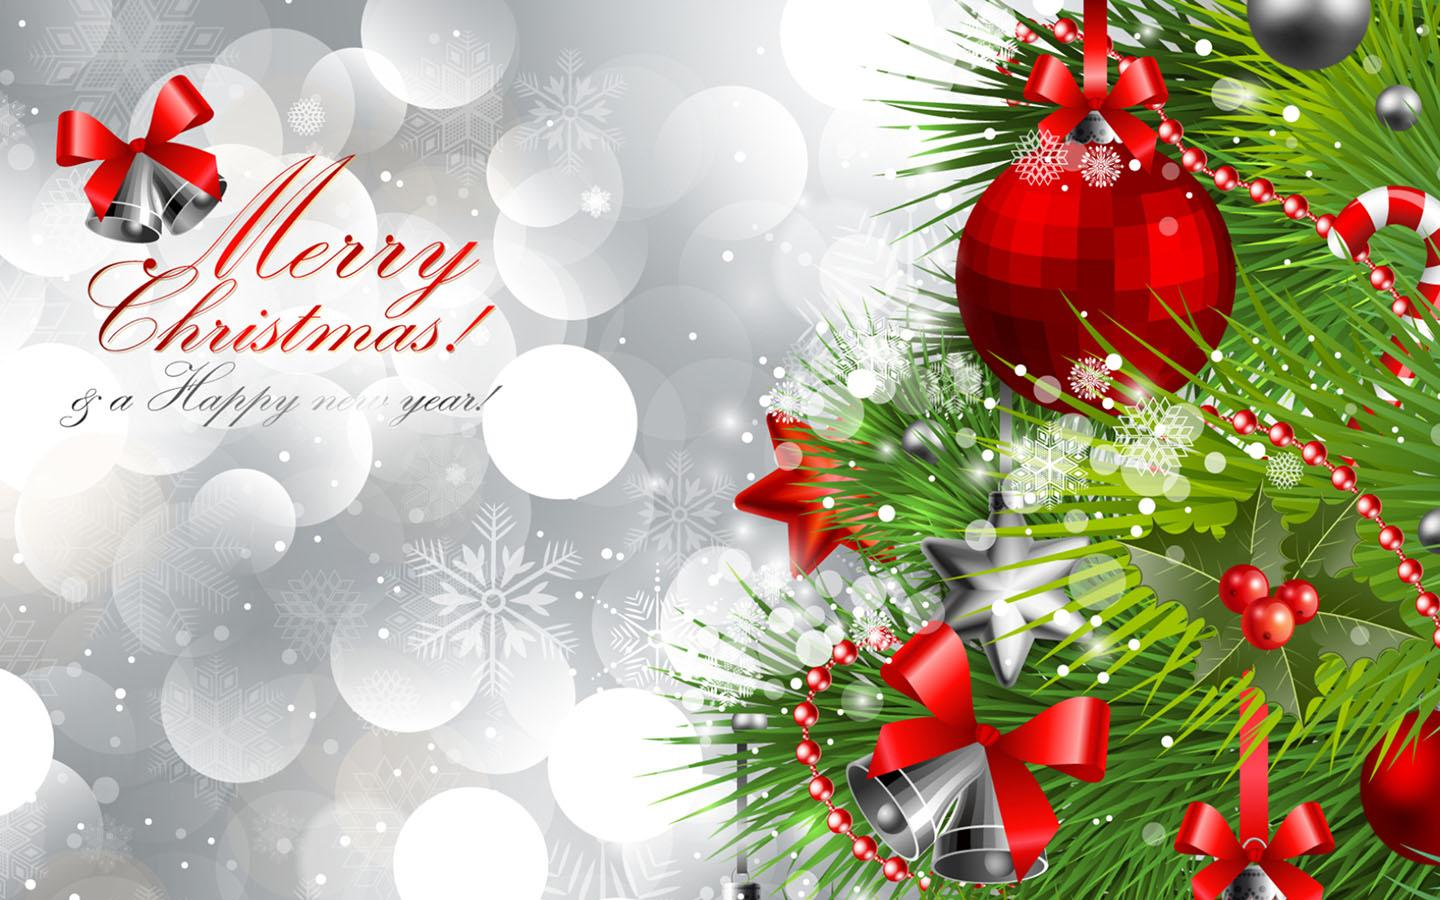 Top 24 Best Free Hd Christmas Wallpapers: Android Apps On Google Play